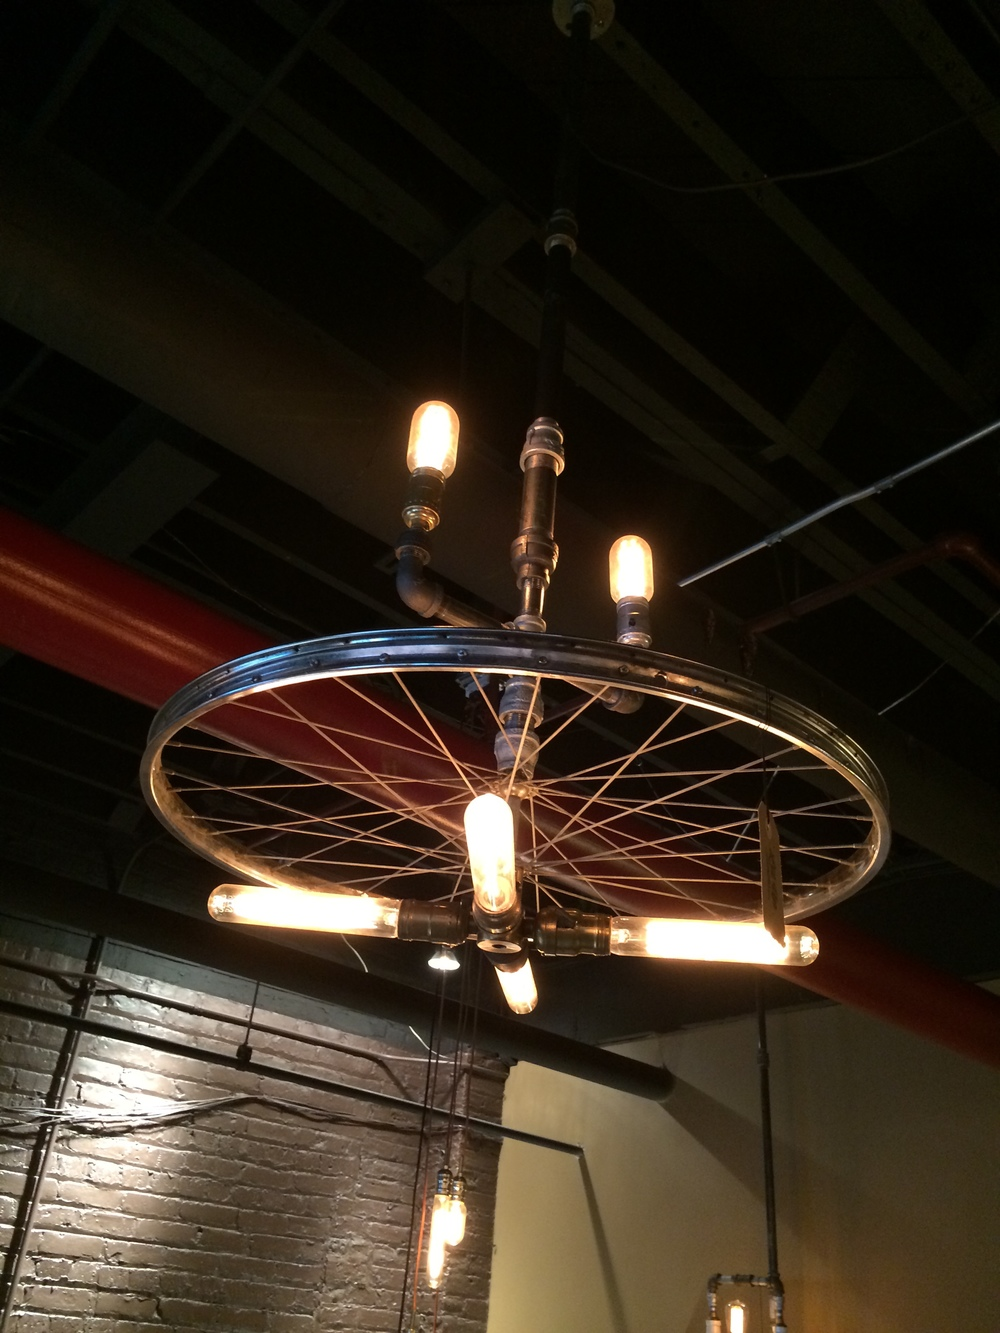 "4' 5"" Plumber Pipe & Wheel Chandelier 4 bulb - $450"